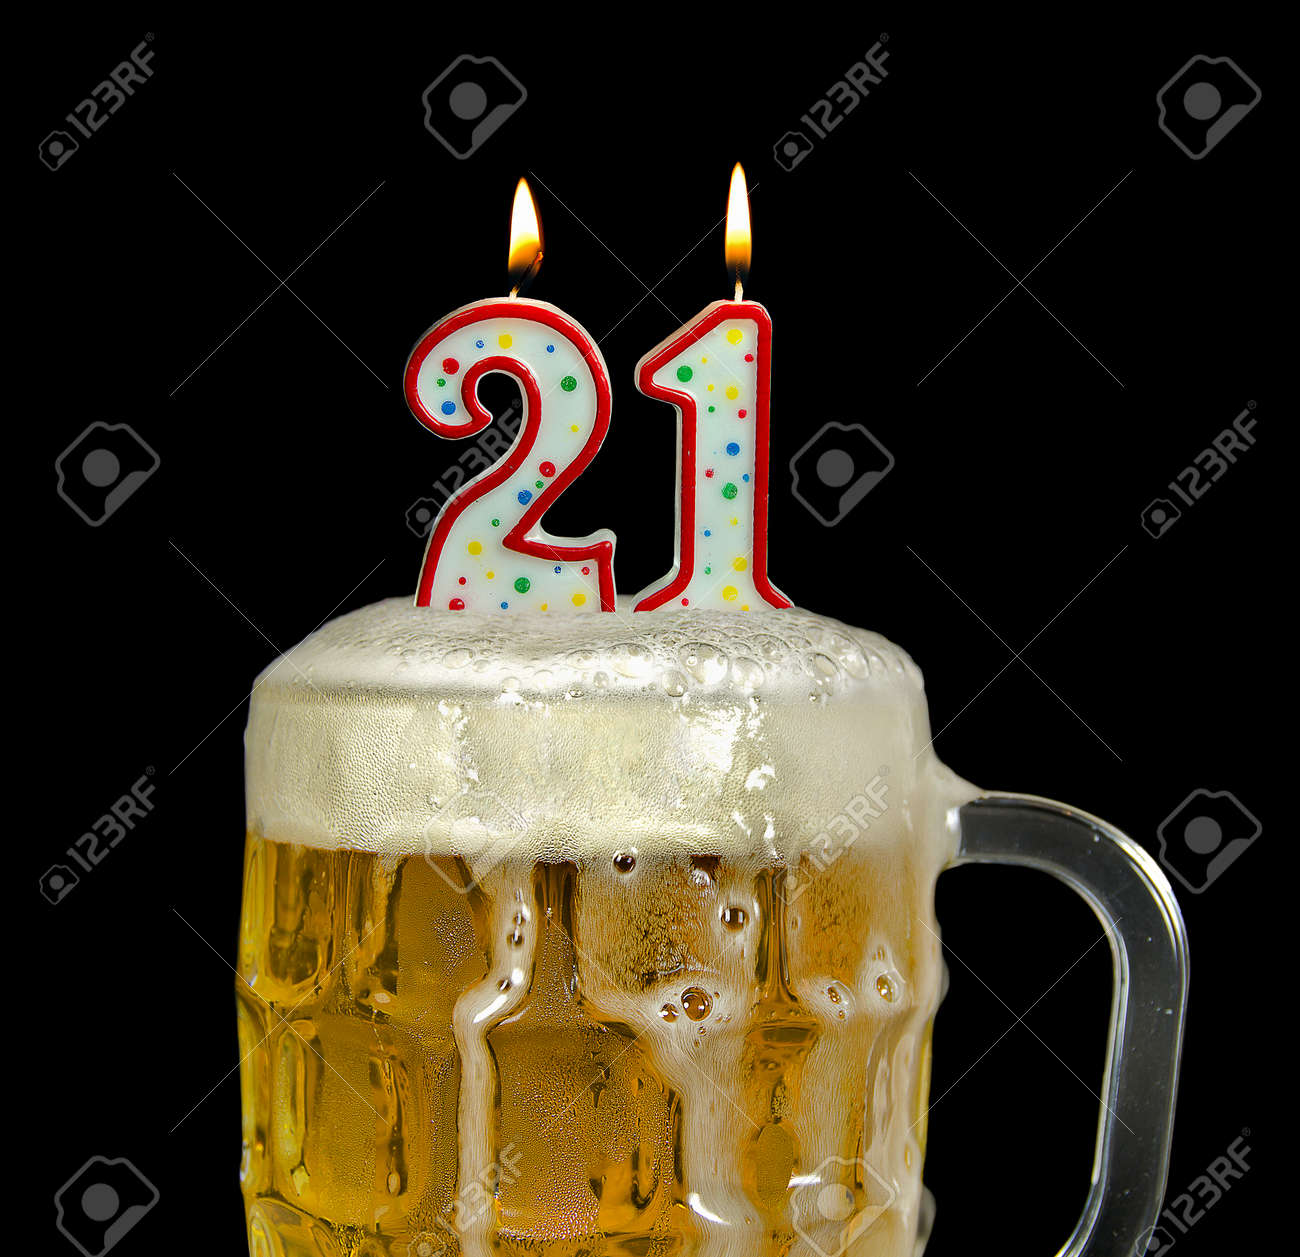 Birthday Candles For 21st In Beer Stock Photo